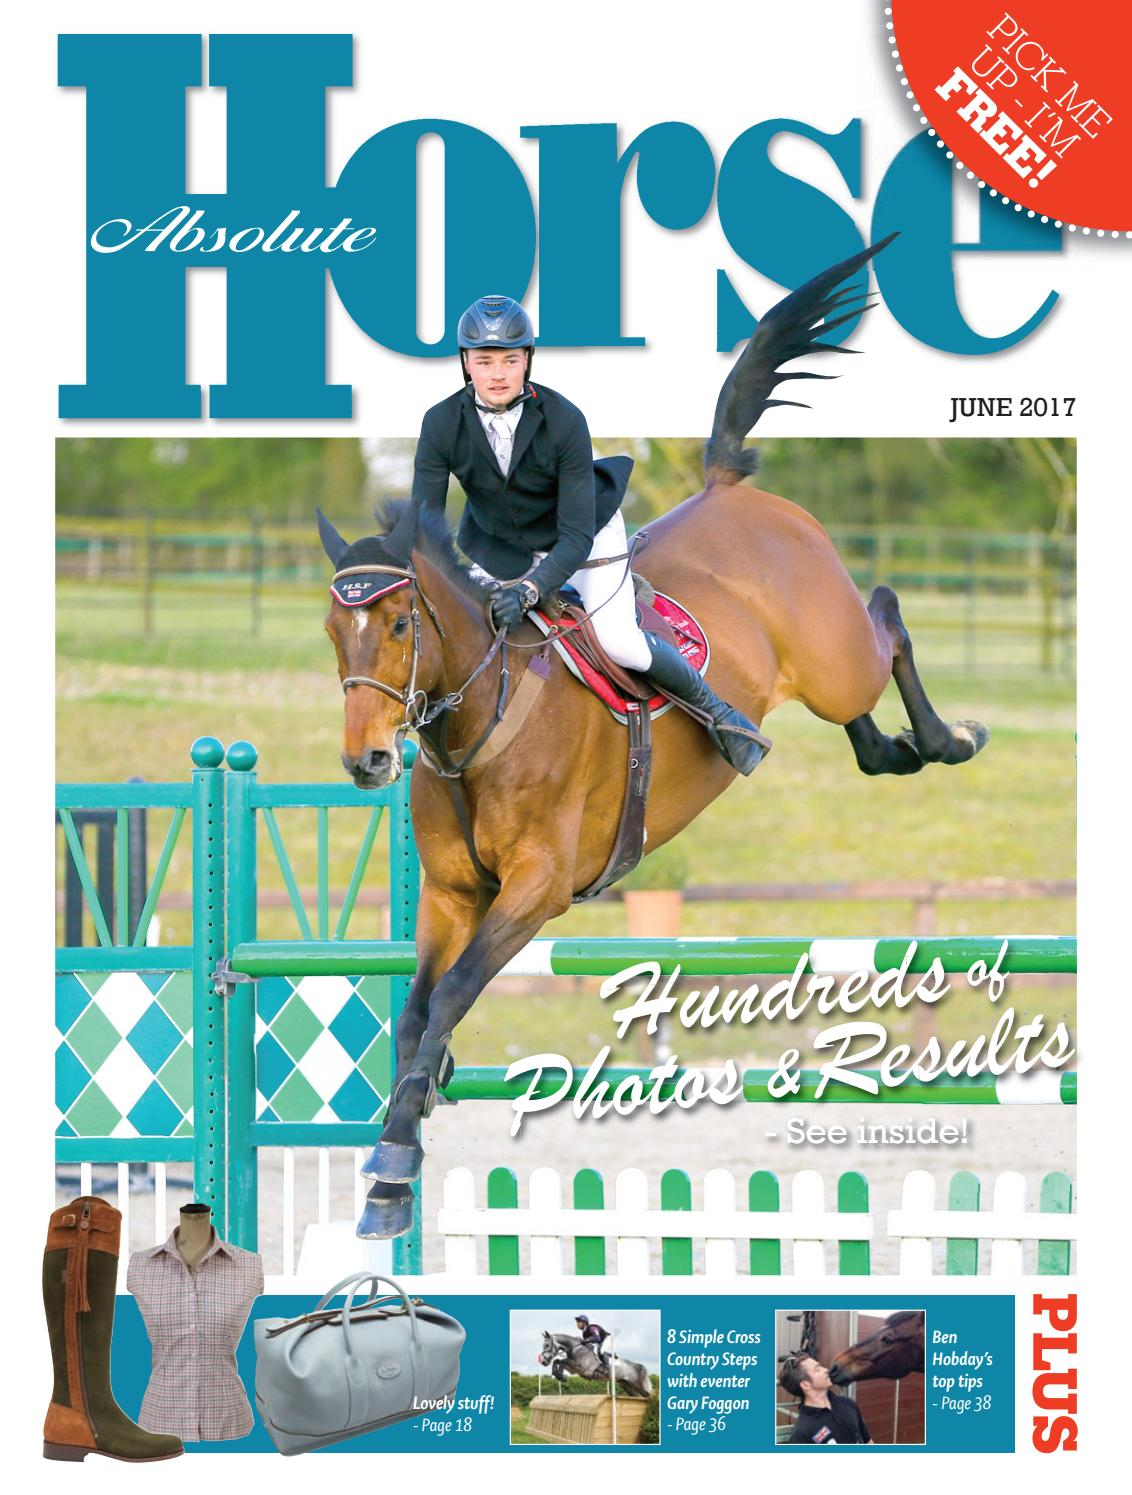 Absolute Horse June 2017 By Absolute Horse Magazine Issuu